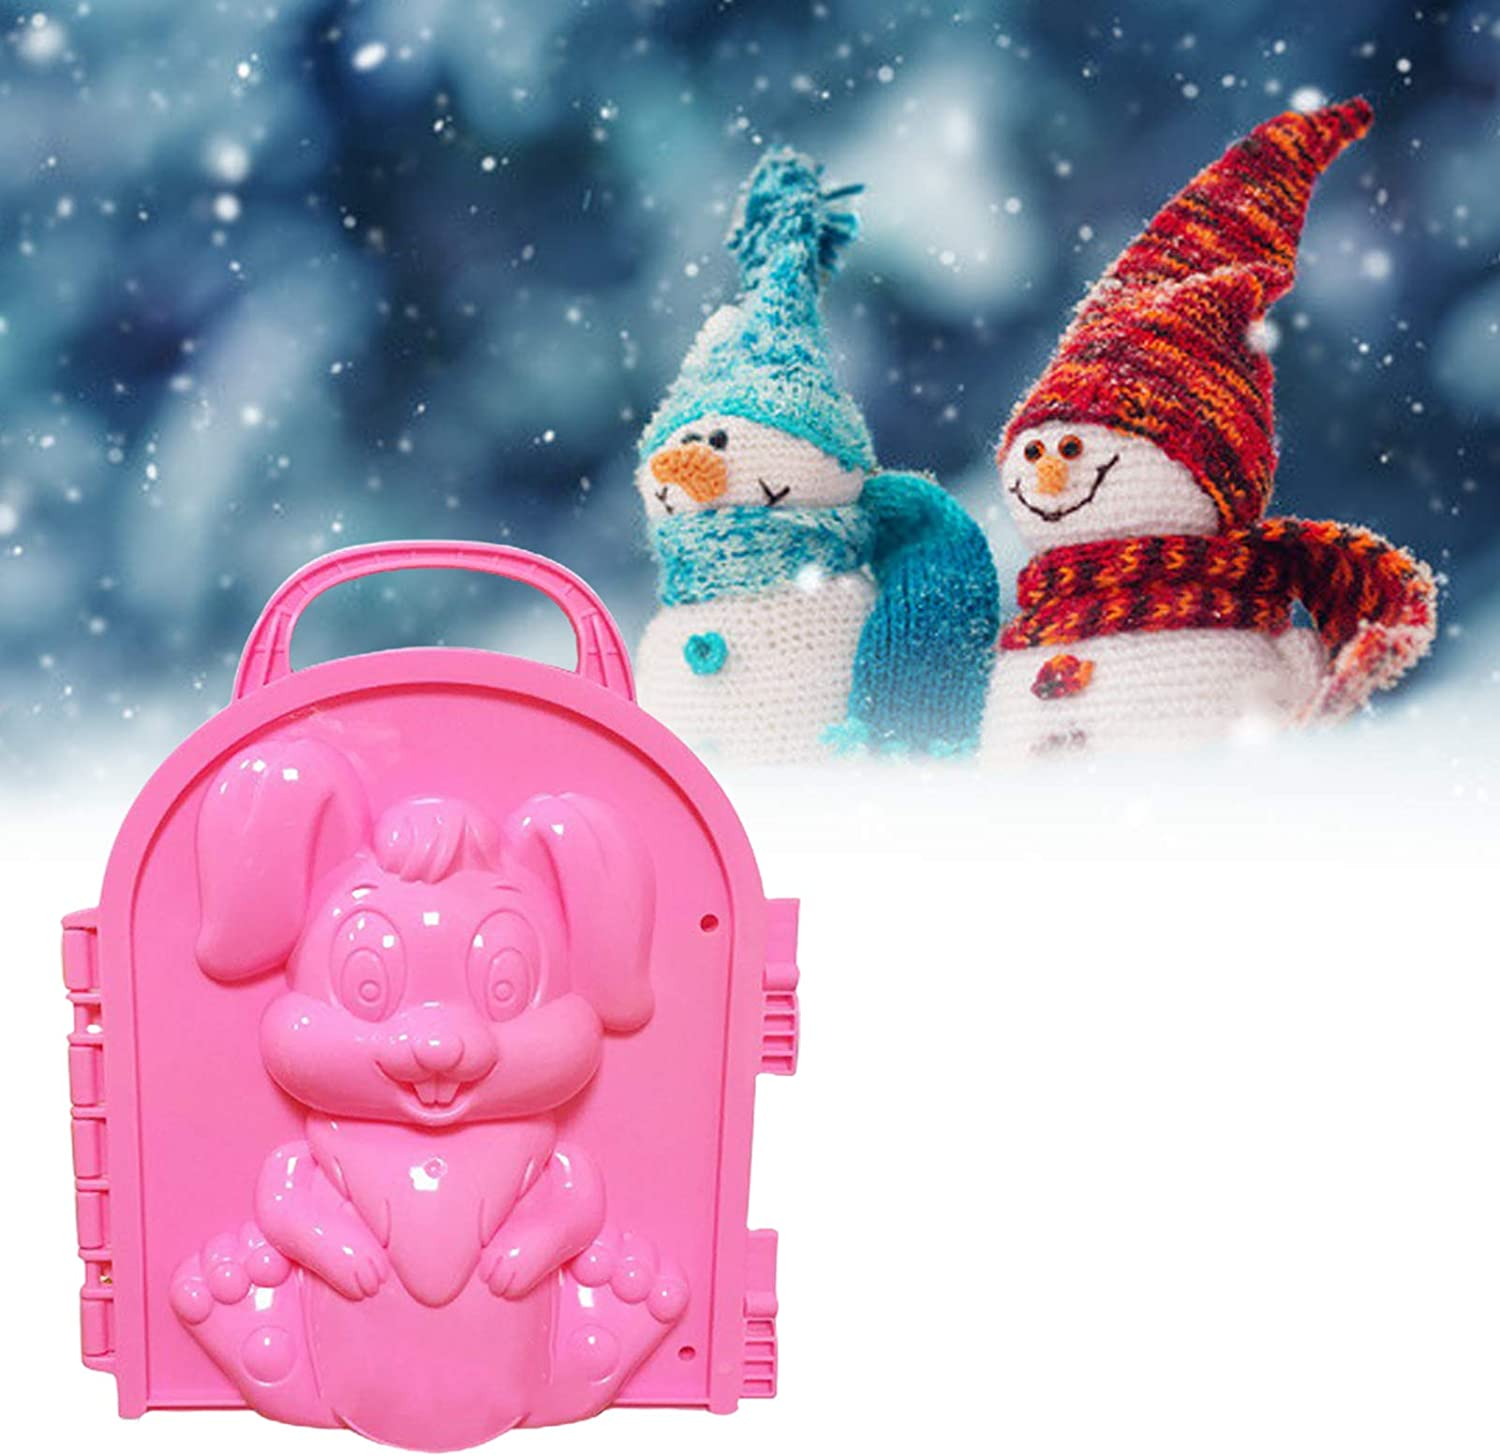 NarutoSak 1Pc Snowball Clip Toys,Winter Snowman Penguin Snowball Maker Clip Snow Mold Tool for Kids and Adults Snow Ball Fights Random Color Penguin